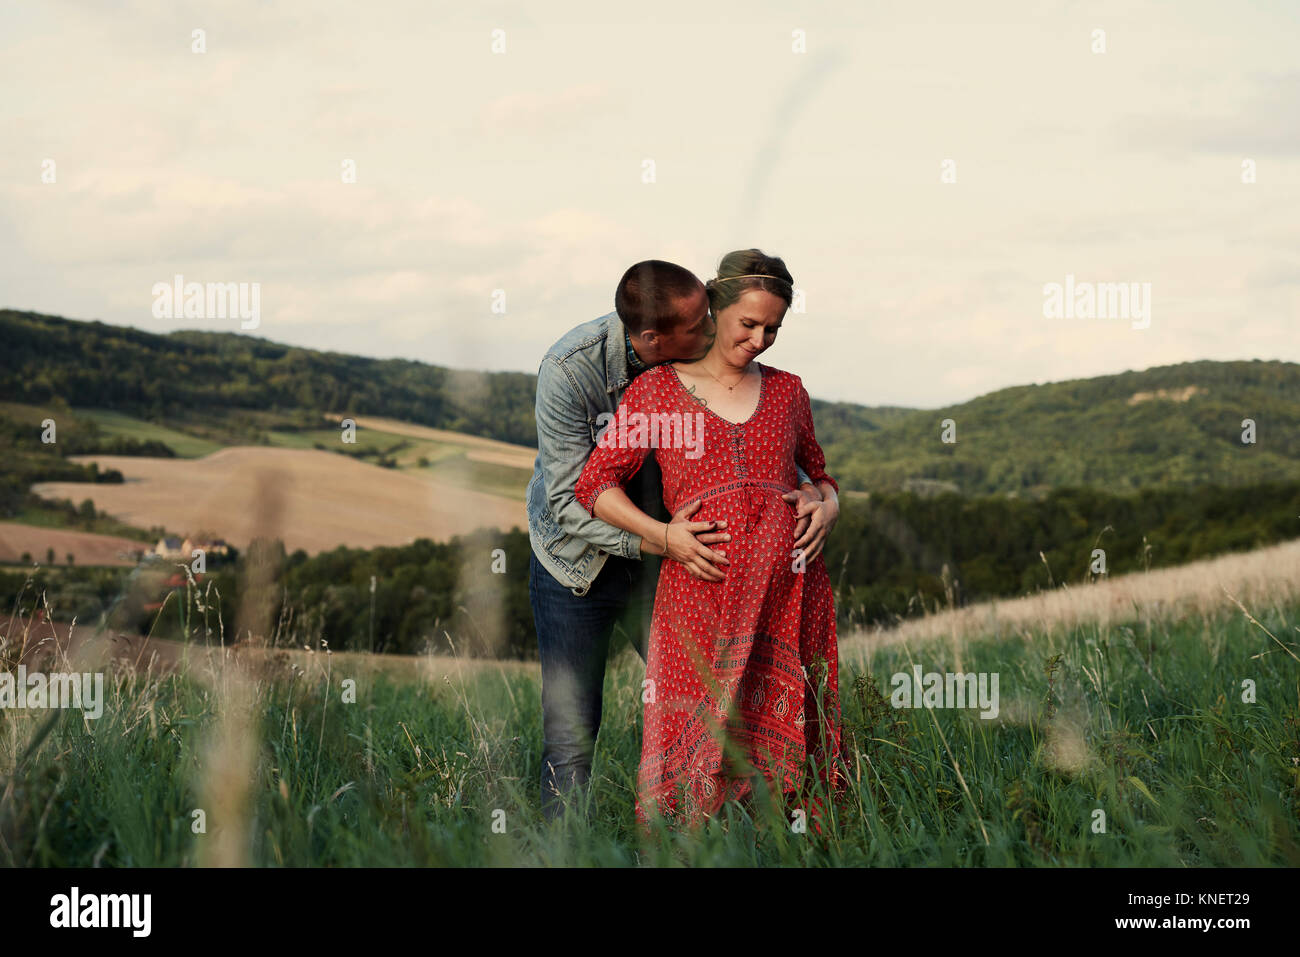 Romantic man with hands on pregnant wife's stomach in landscape - Stock Image